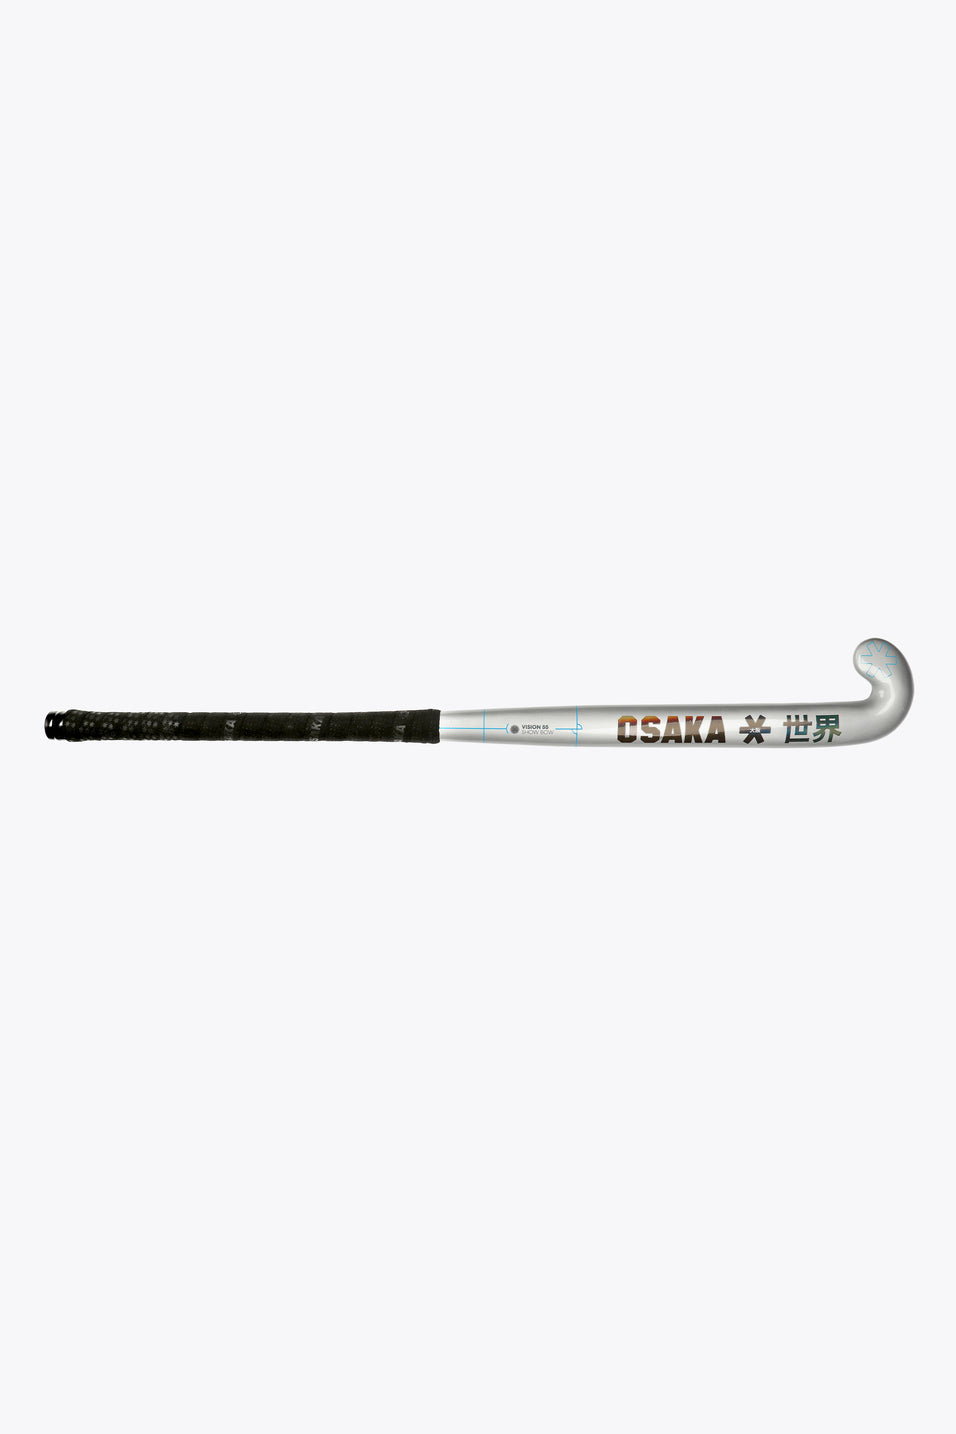 hockey stick from Osaka hockey